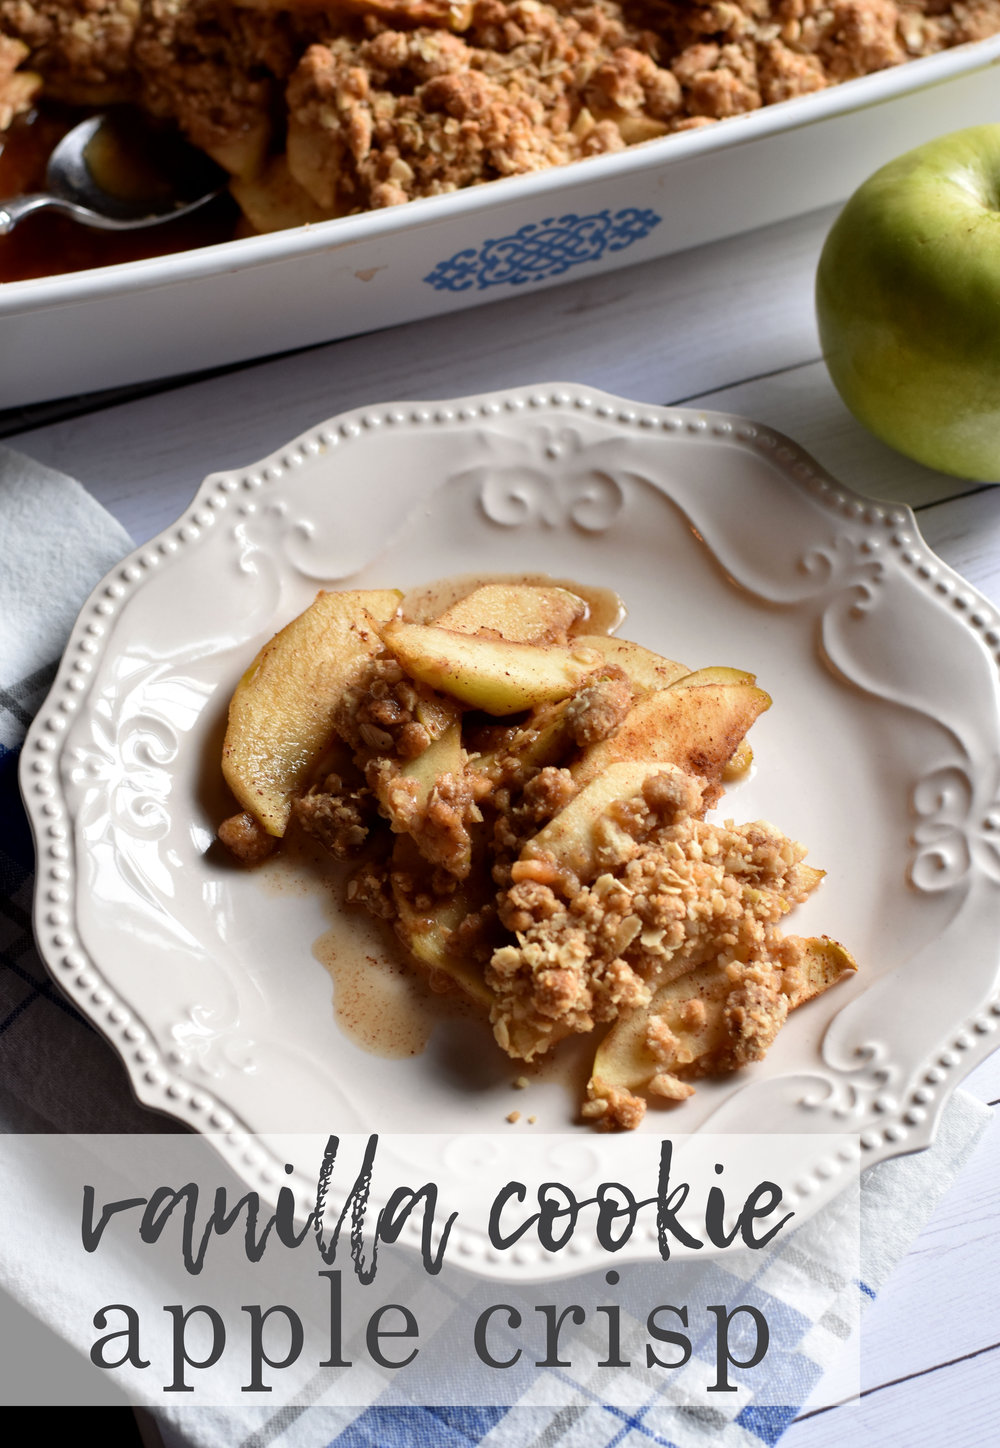 Vanilla Cookie Apple Crisp Pinterest Graphic.jpg